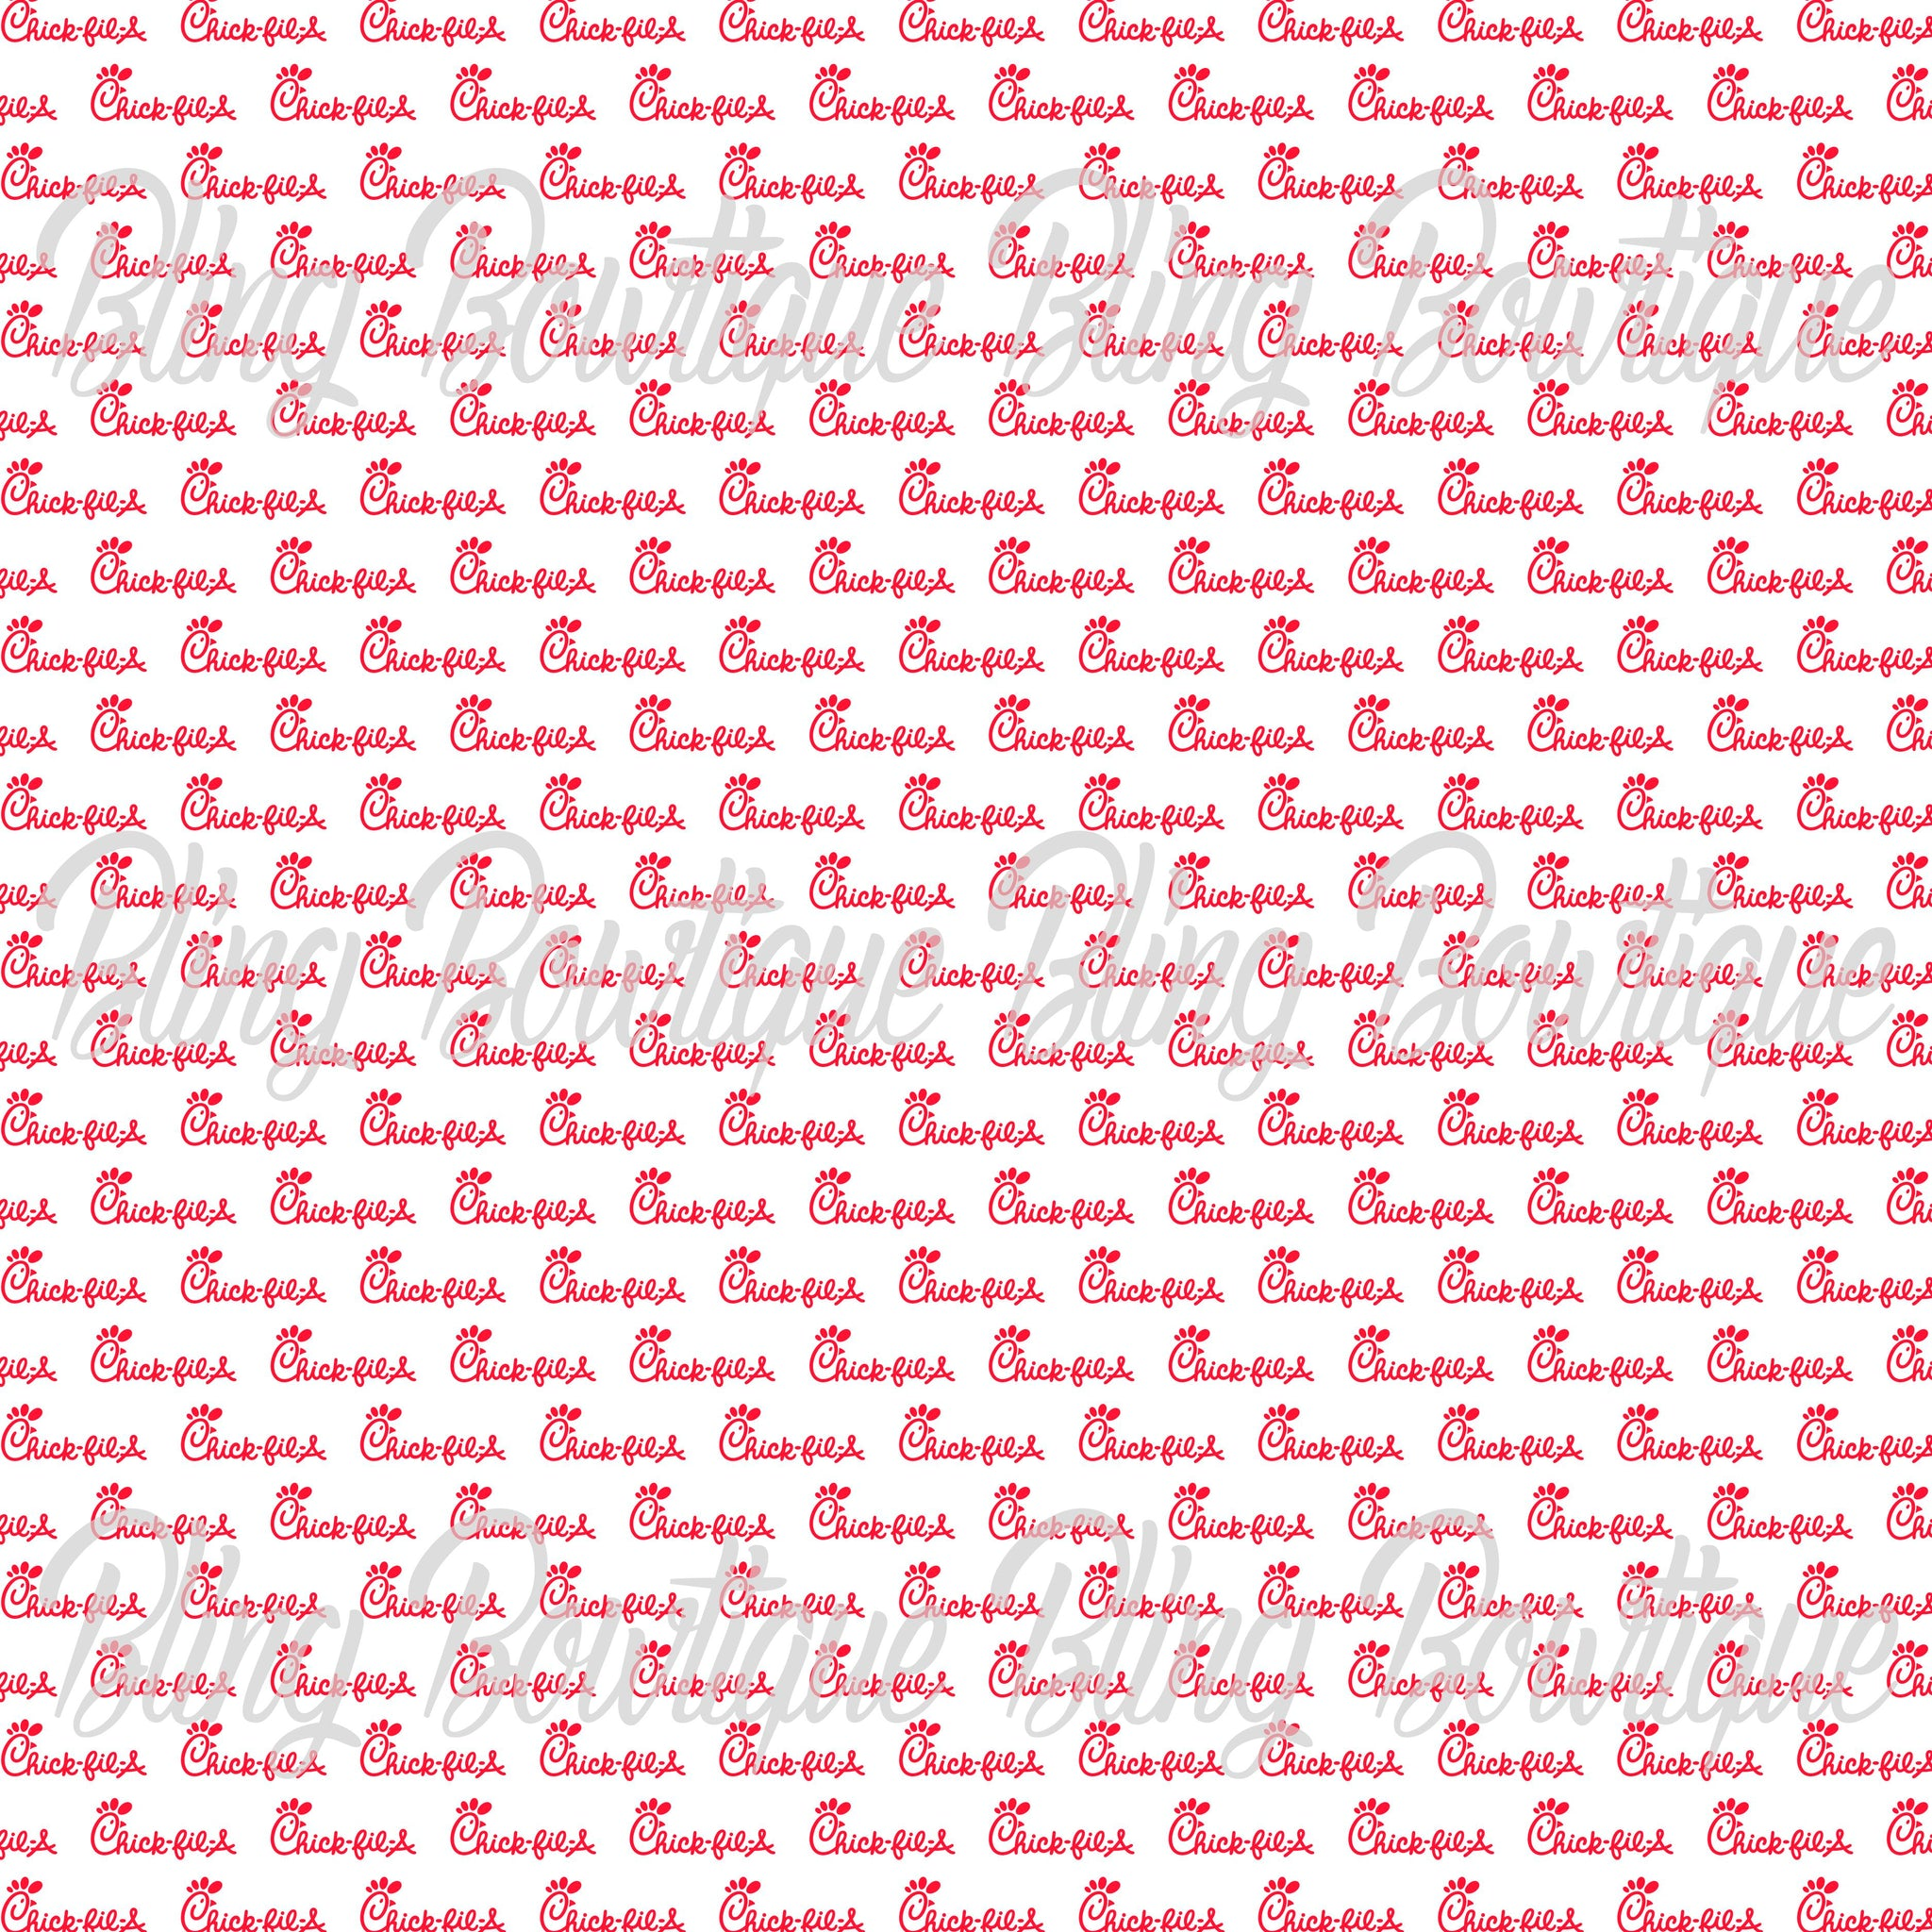 Chick Fil A 2 Glitter Canvas, Regular Canvas, Faux Leather For Bows